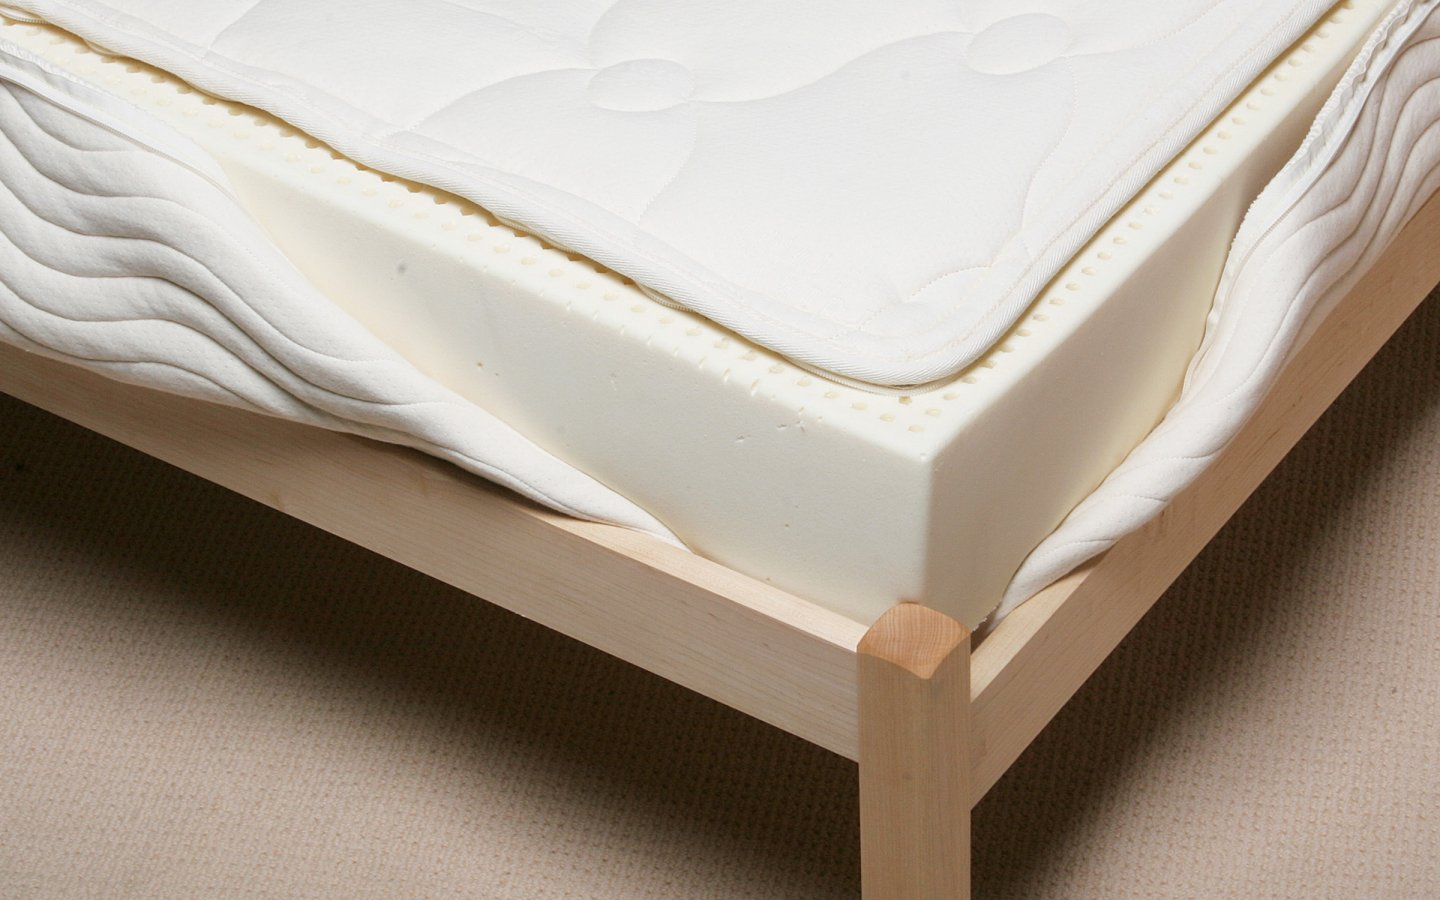 Detailed view of 6 inch latex mattress showing a solid core of natural Talalay latex.